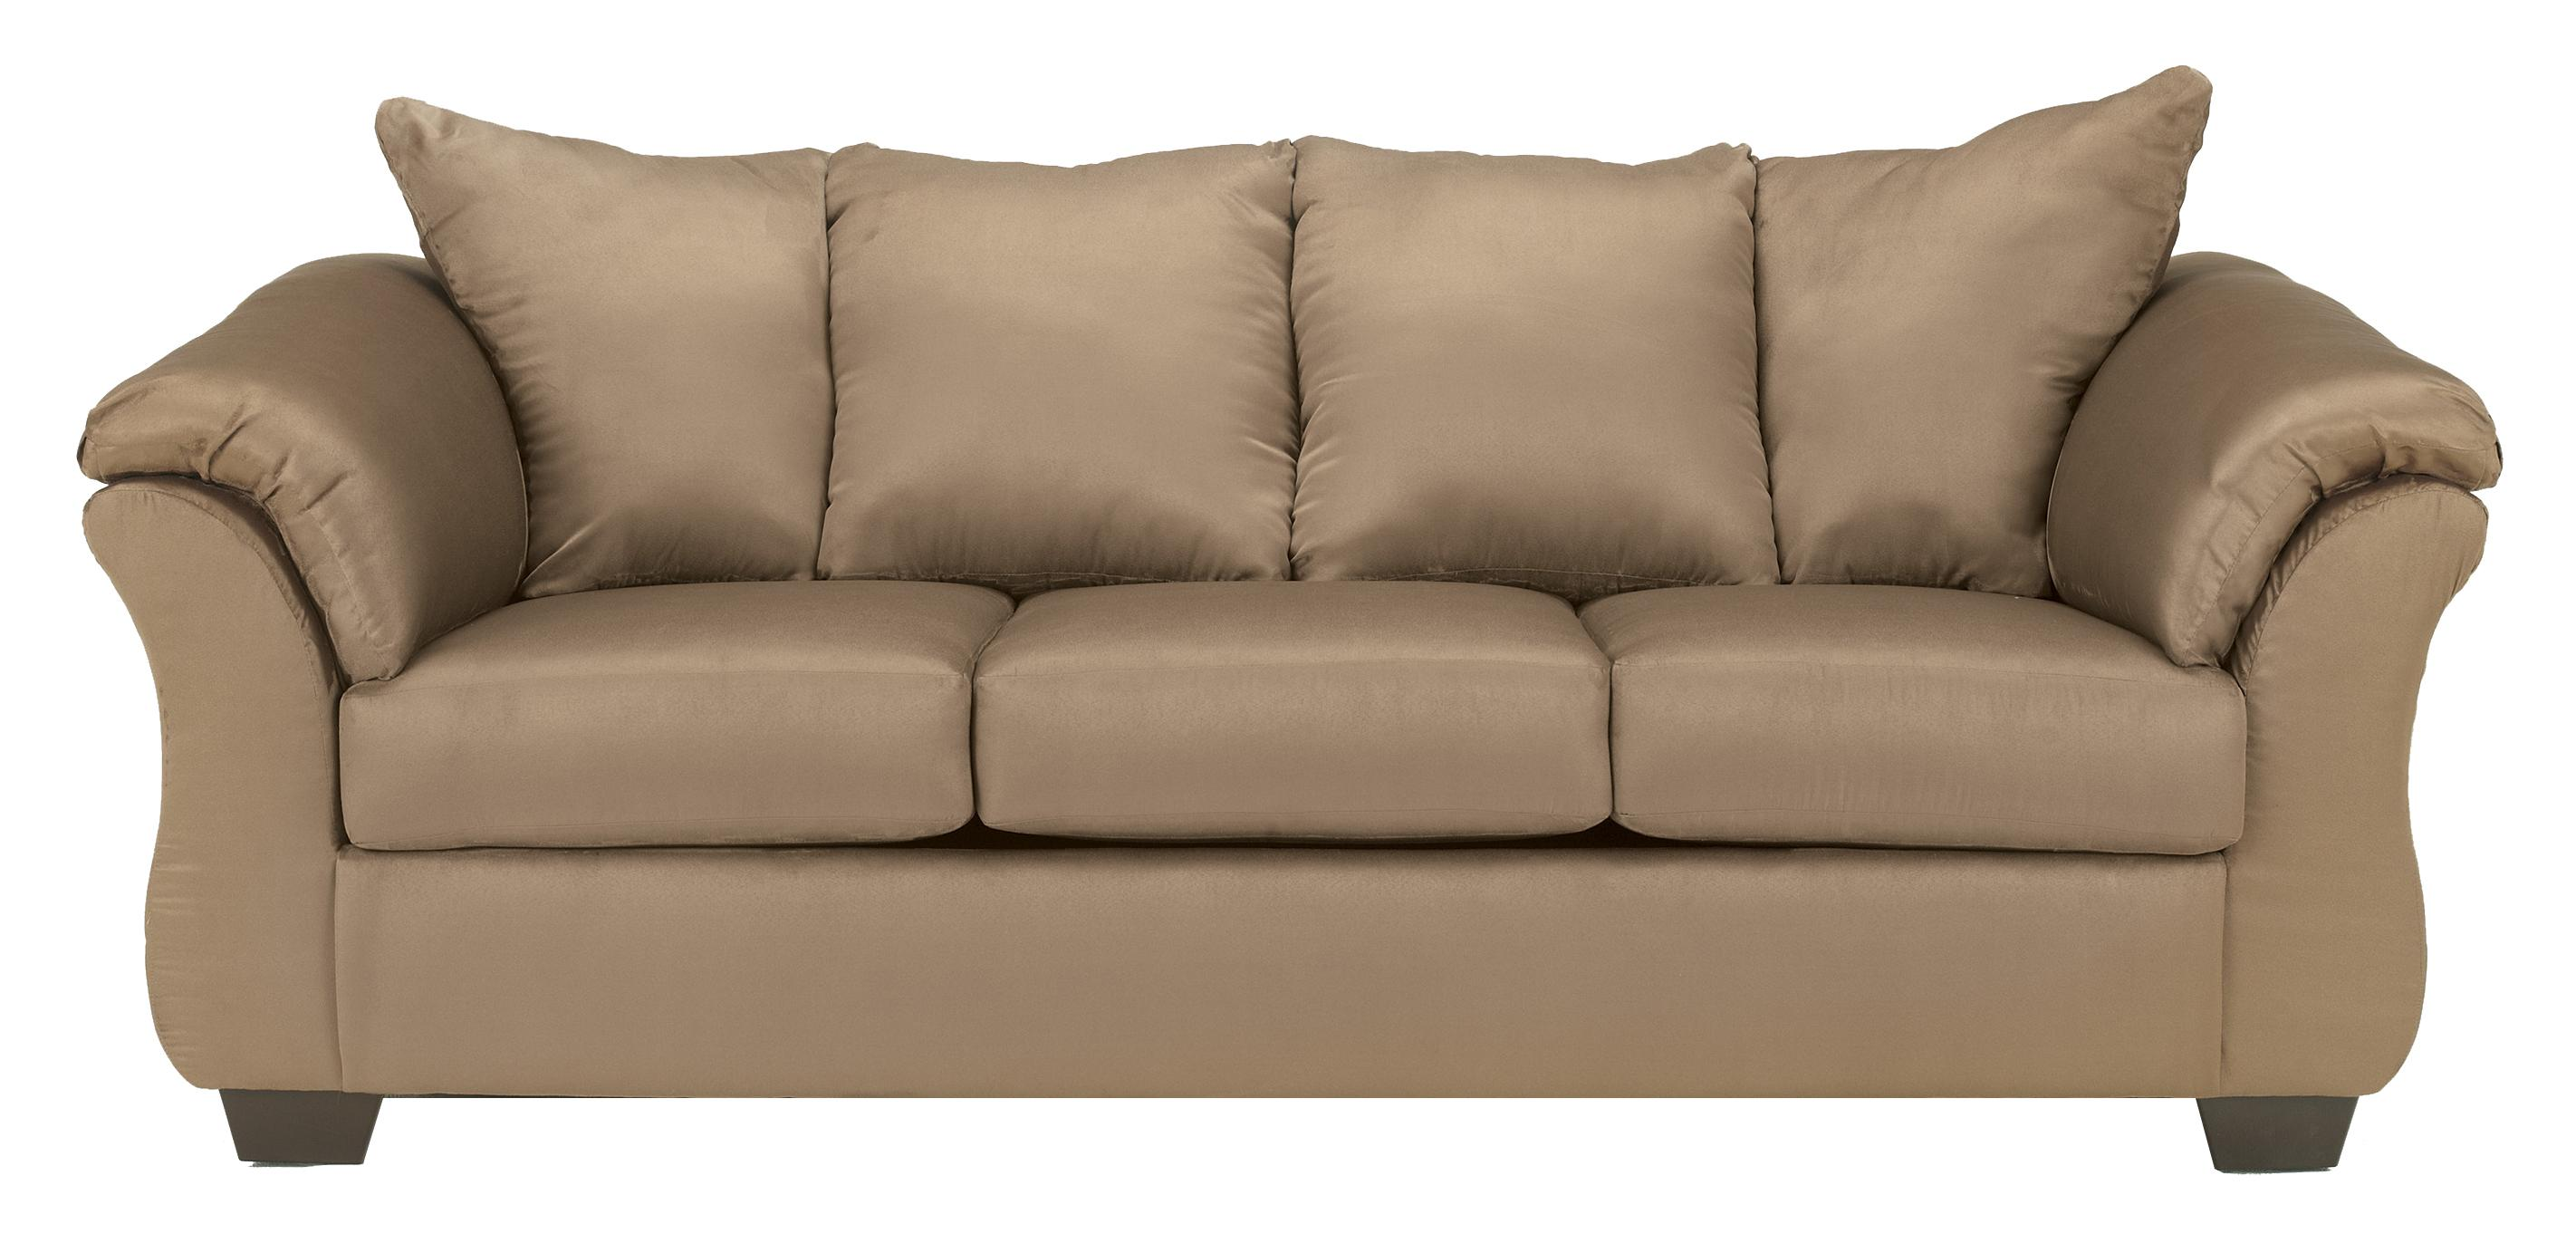 Signature Design by Ashley Darcy - Mocha Stationary Sofa - Item Number: 7500238